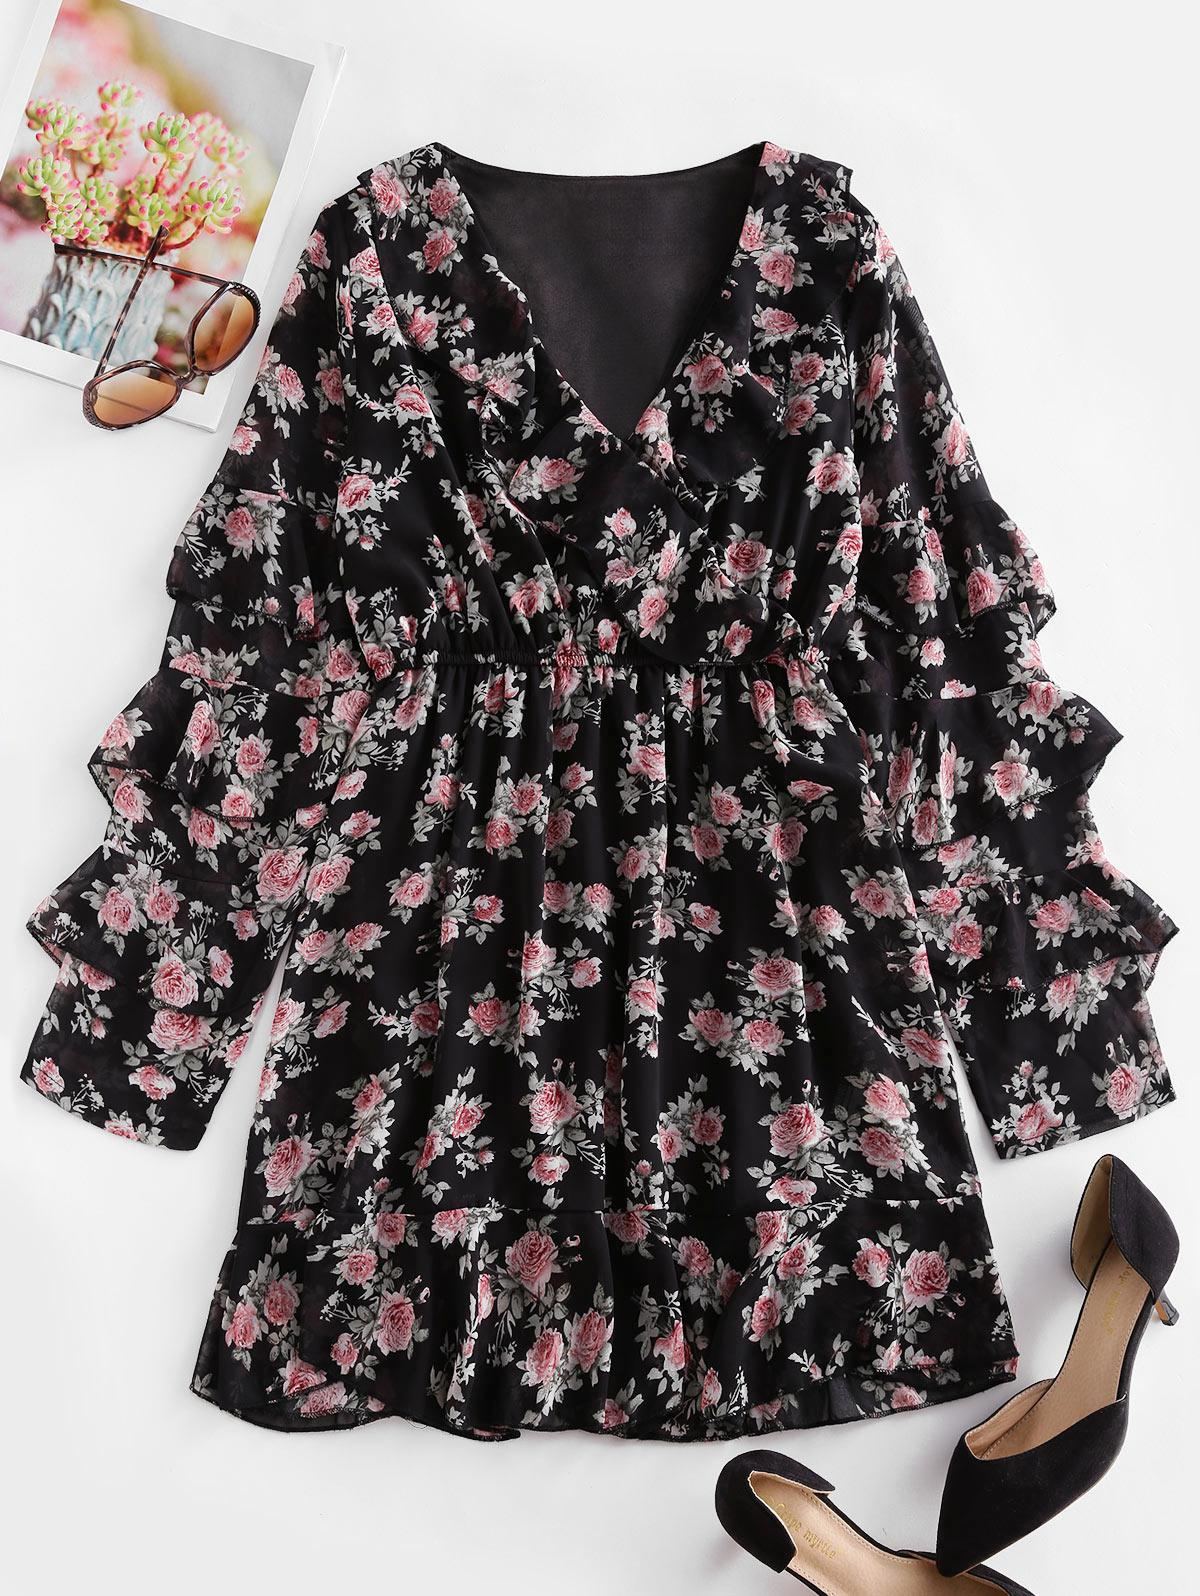 Floral Layered Ruffled Surplice Chiffon Dress